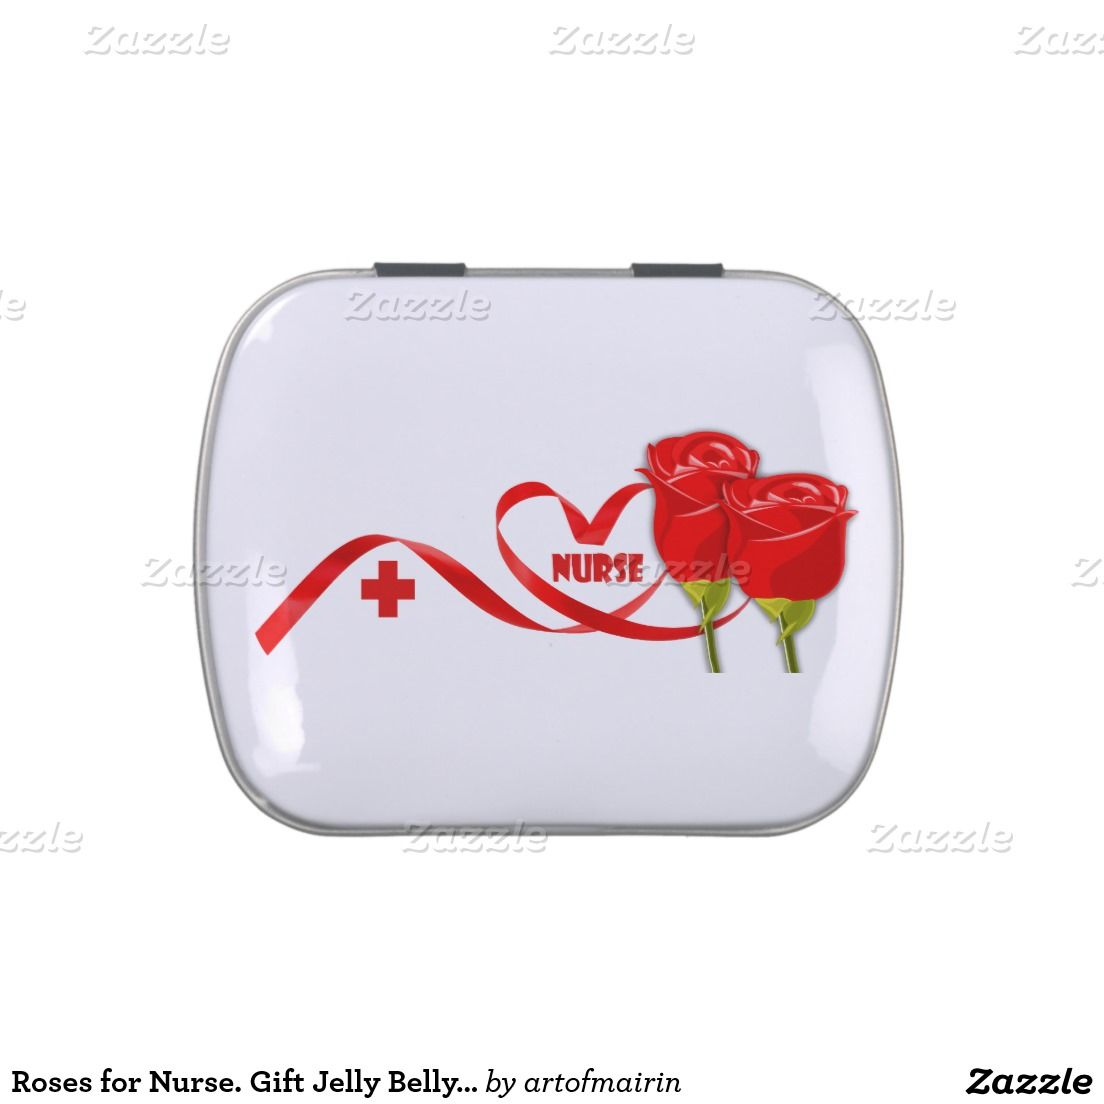 Red Rose design tins Nurses Day / Nurses Week / Nurse Appreciation / Graduation from Nursing School / Birthday / Any Occasion Gift Jelly Belly Candy for nurses. Matching Cards in various languages, postage stamps and other products available in the Business Related Holidays / Healthcare Category of the artofmairin store at zazzle.com